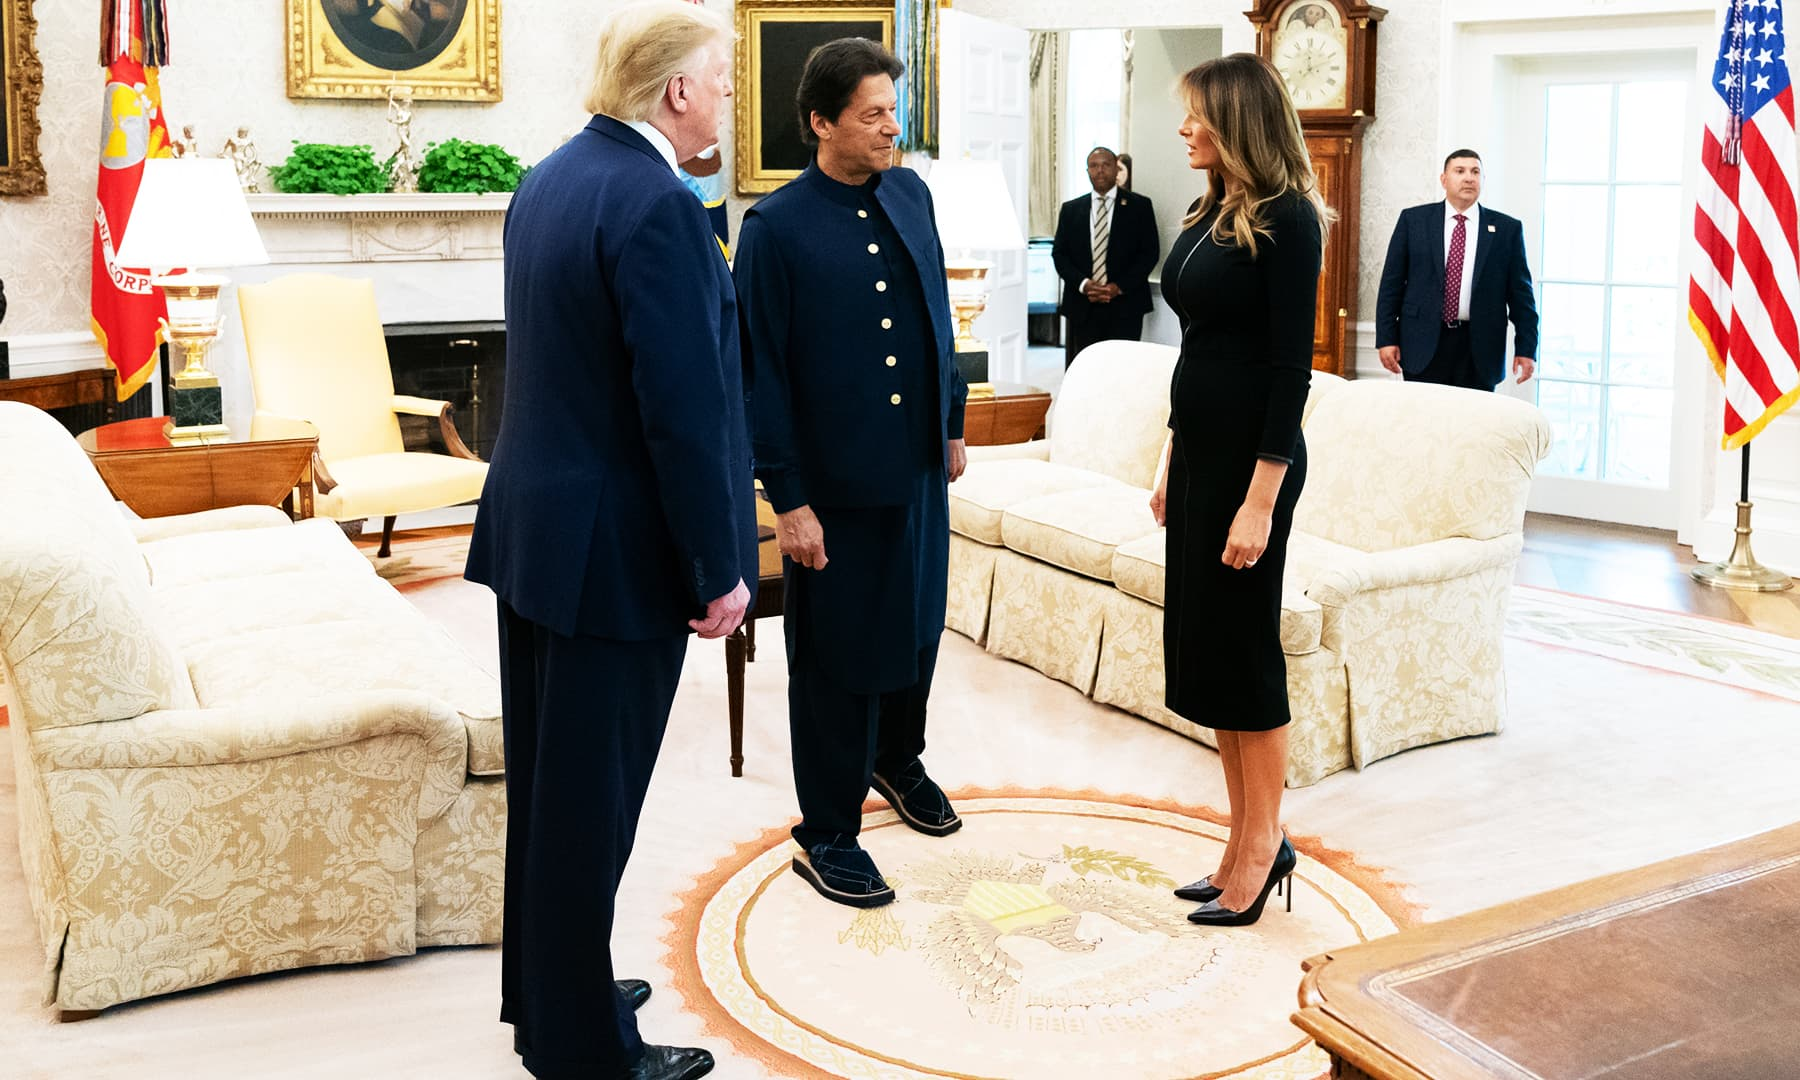 PM Imran greeting US First Lady Melania Trump. — AP